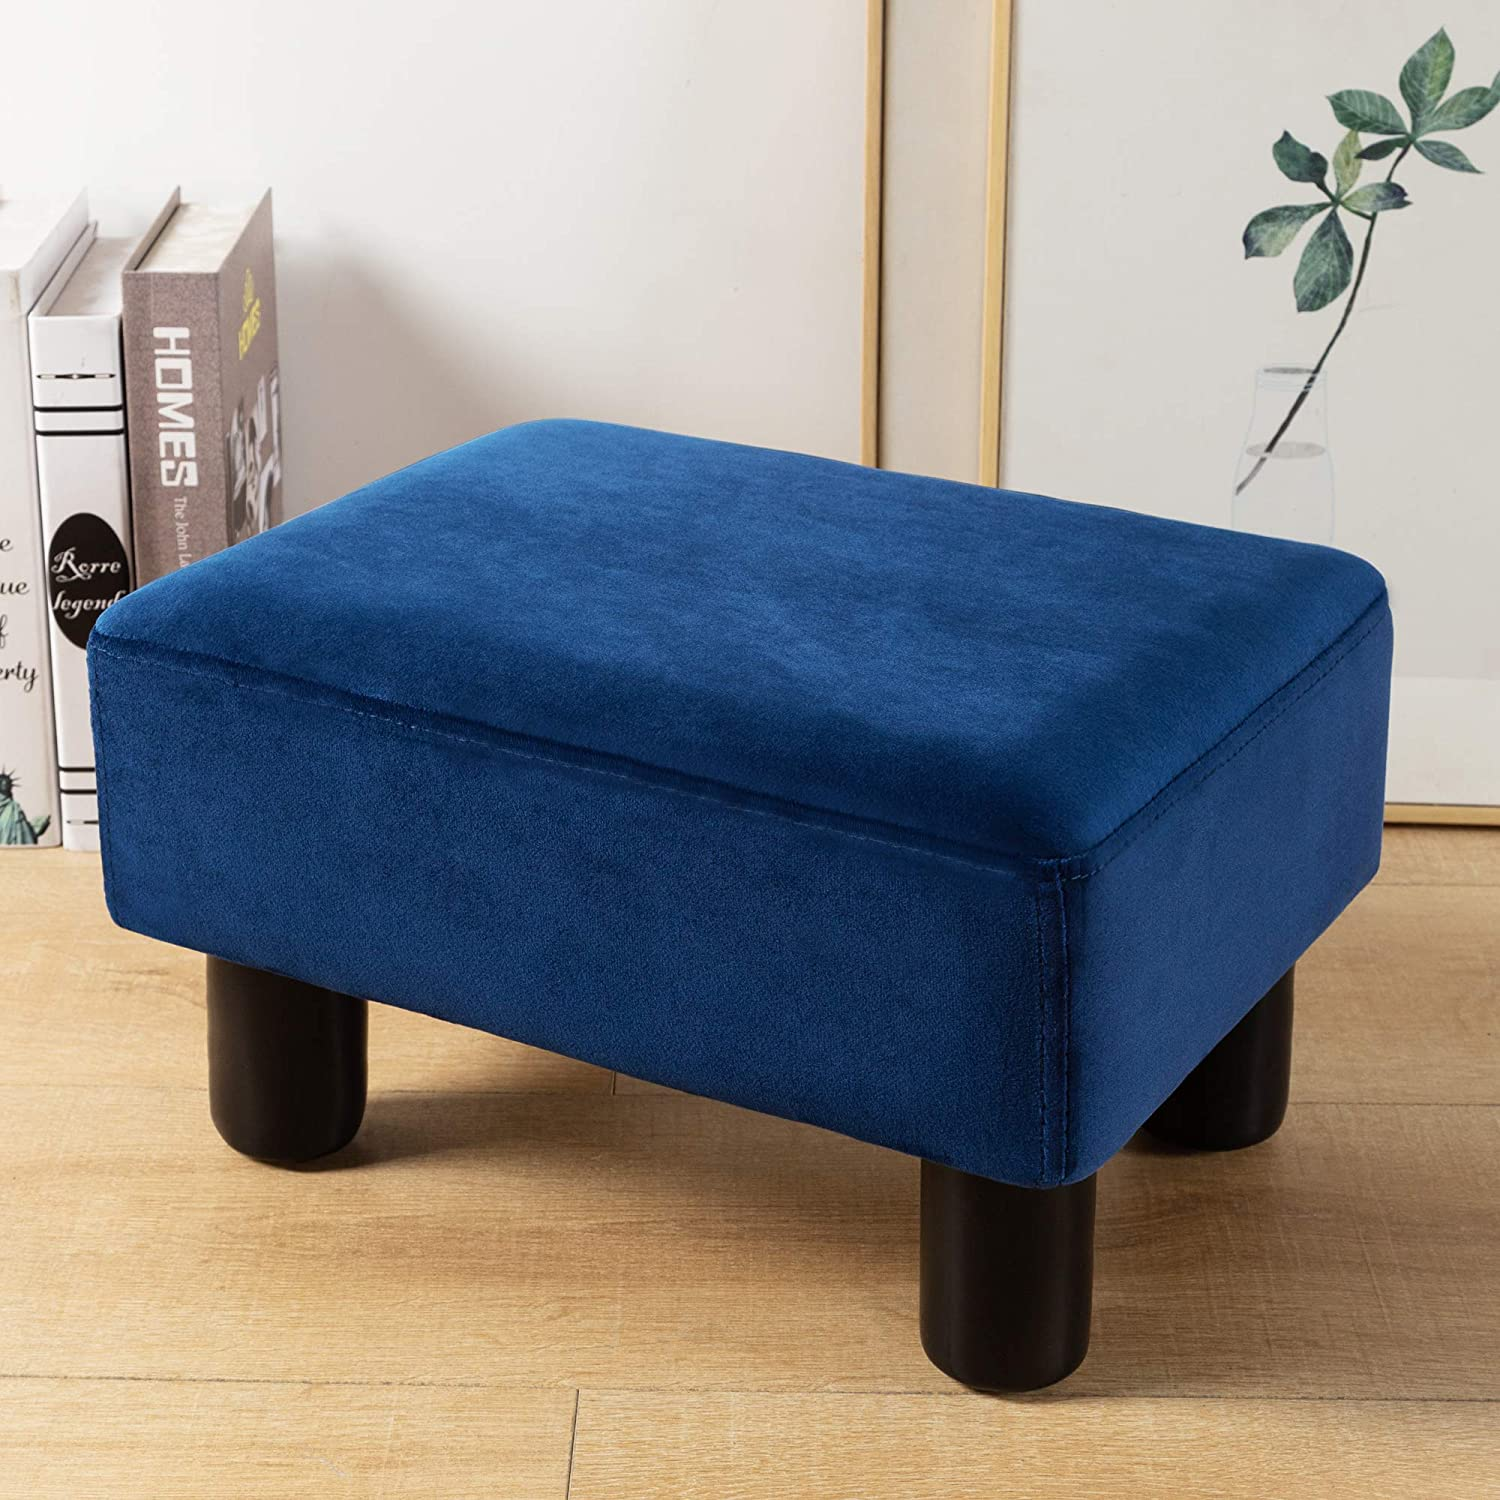 Small Rectangle Foot Stool, Navy Velvet Fabric Footrest Small Ottoman Stool with Non-Skid Plastic Legs, Modern Rectangle Footstools Small Step Stool Ottoman for Couch, Desk, Office, Living Room, Dogs